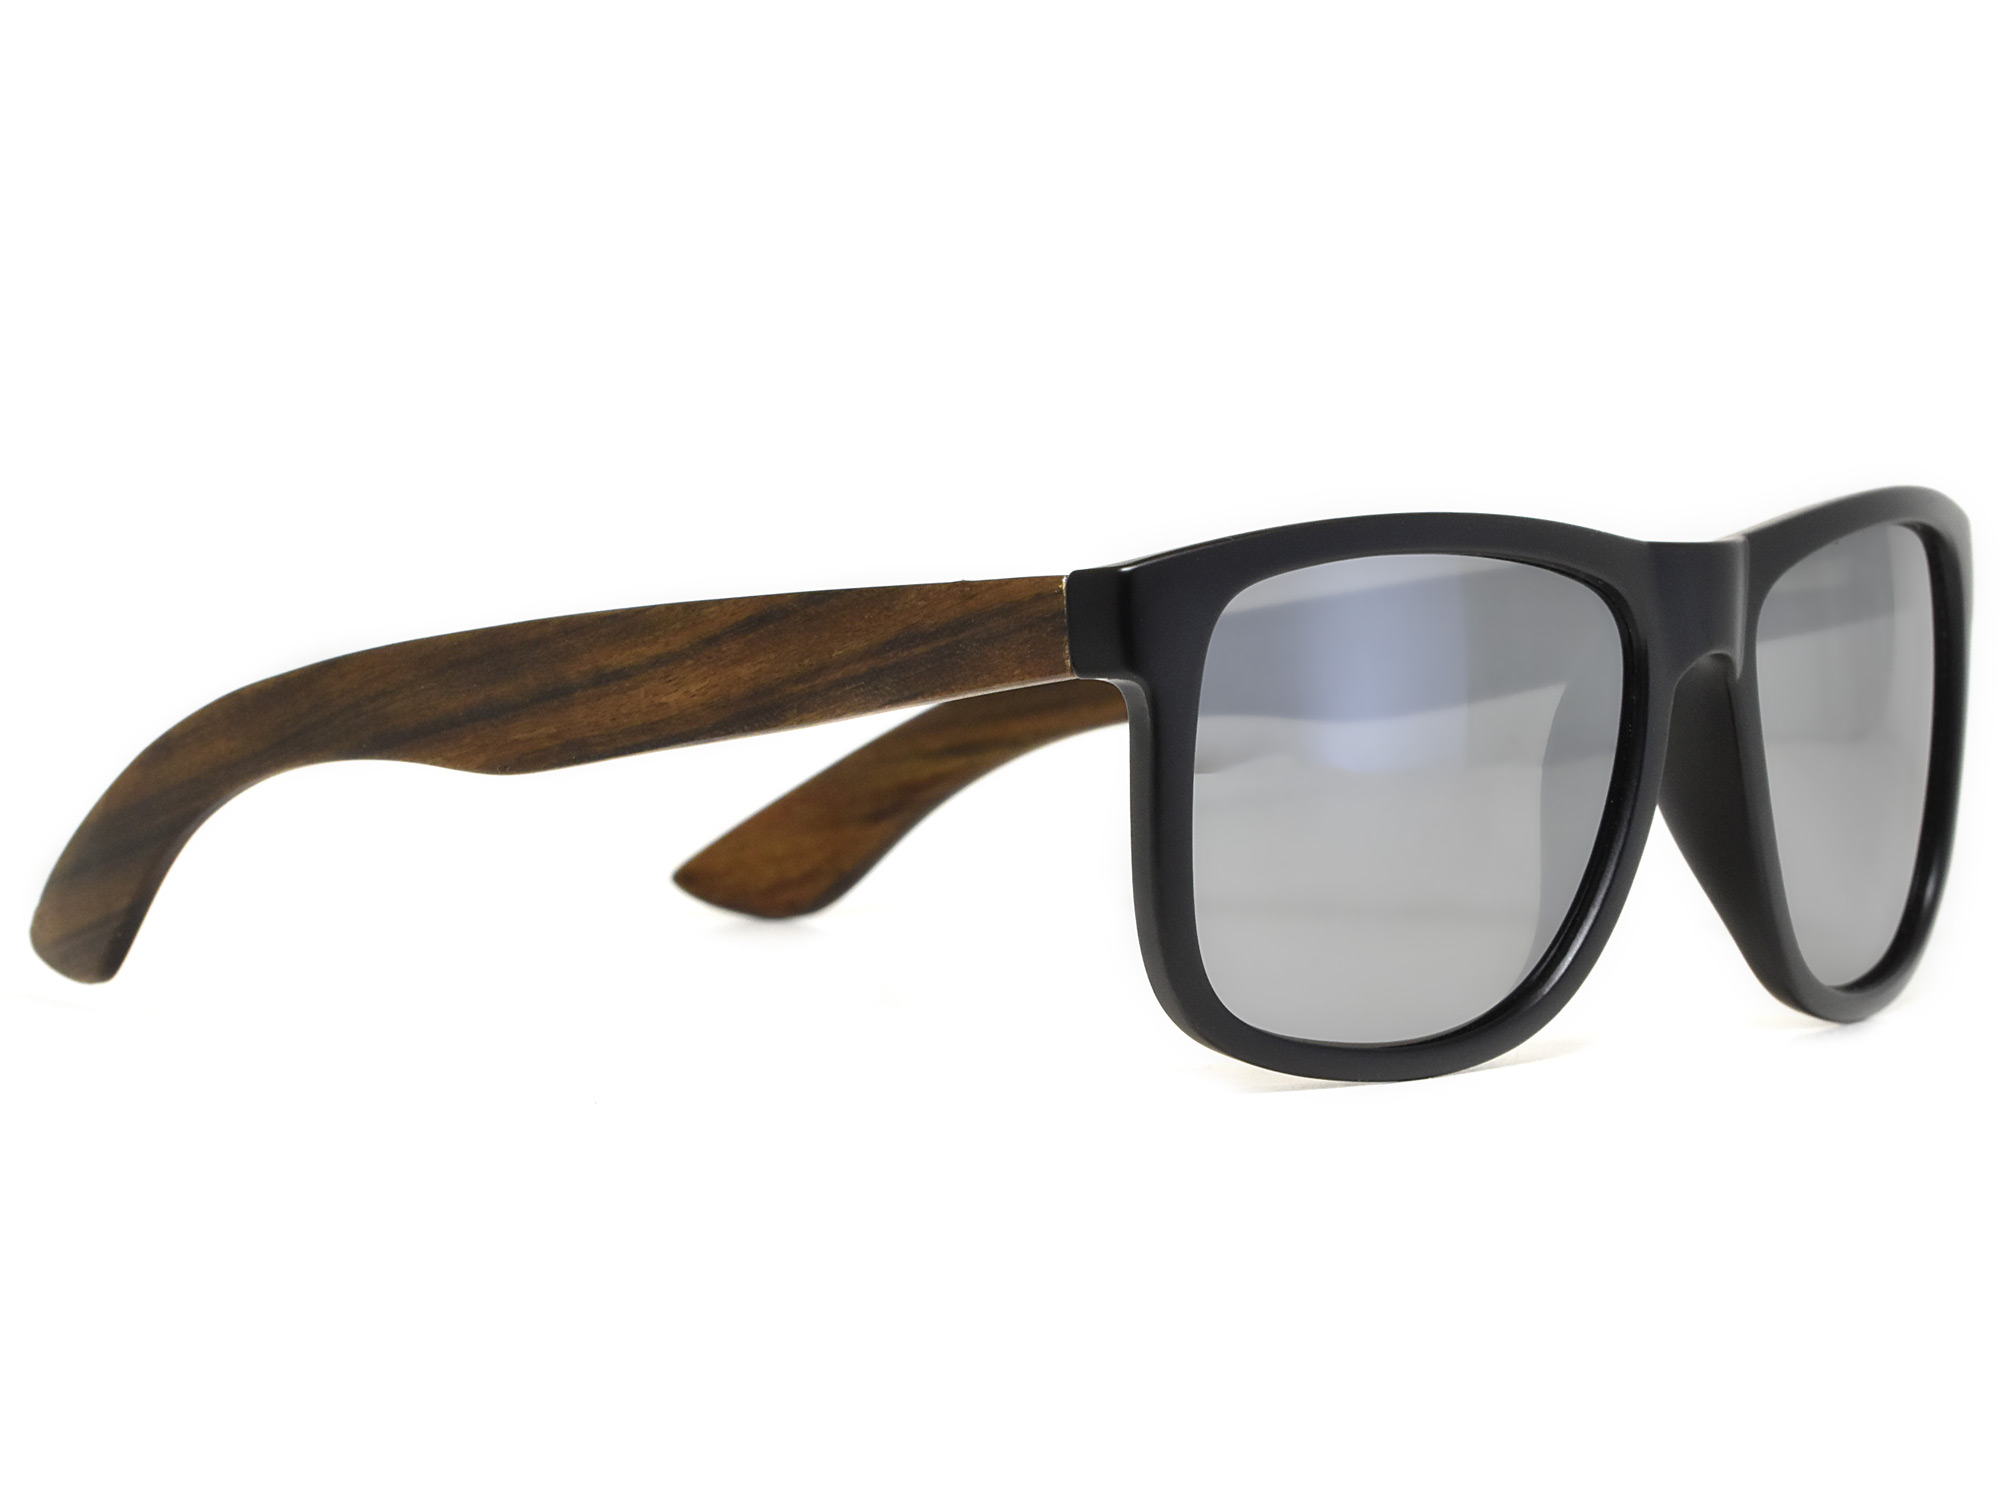 Square ebony wood sunglasses with silver mirrored polarized lenses right